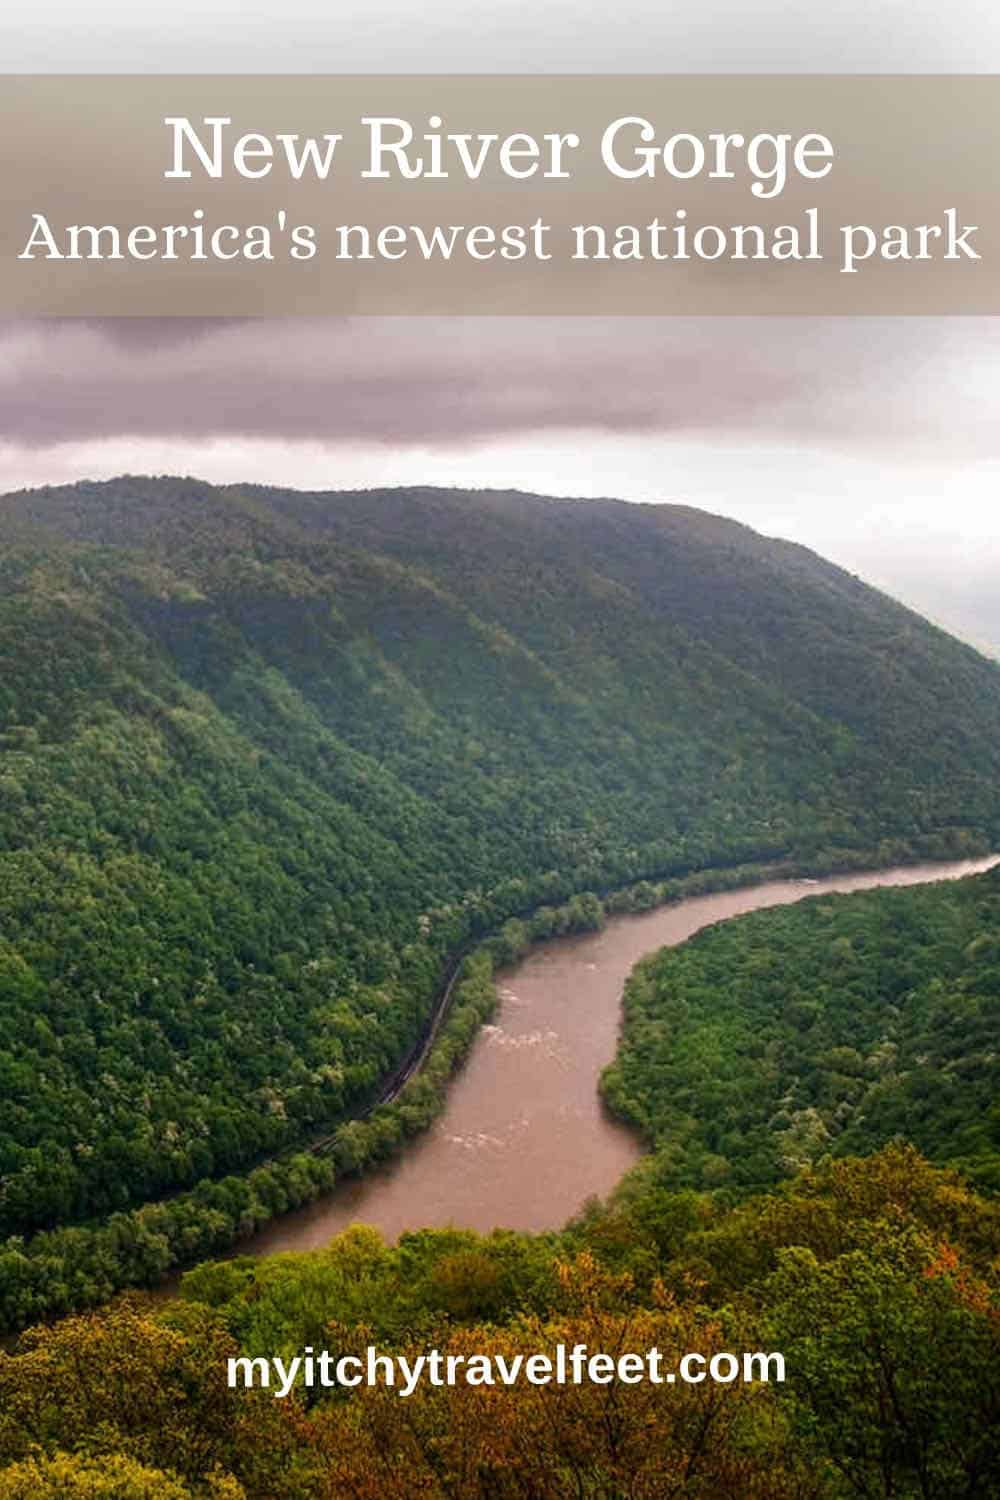 Text on photo of mountains and river: New River Gorge America's newest national park